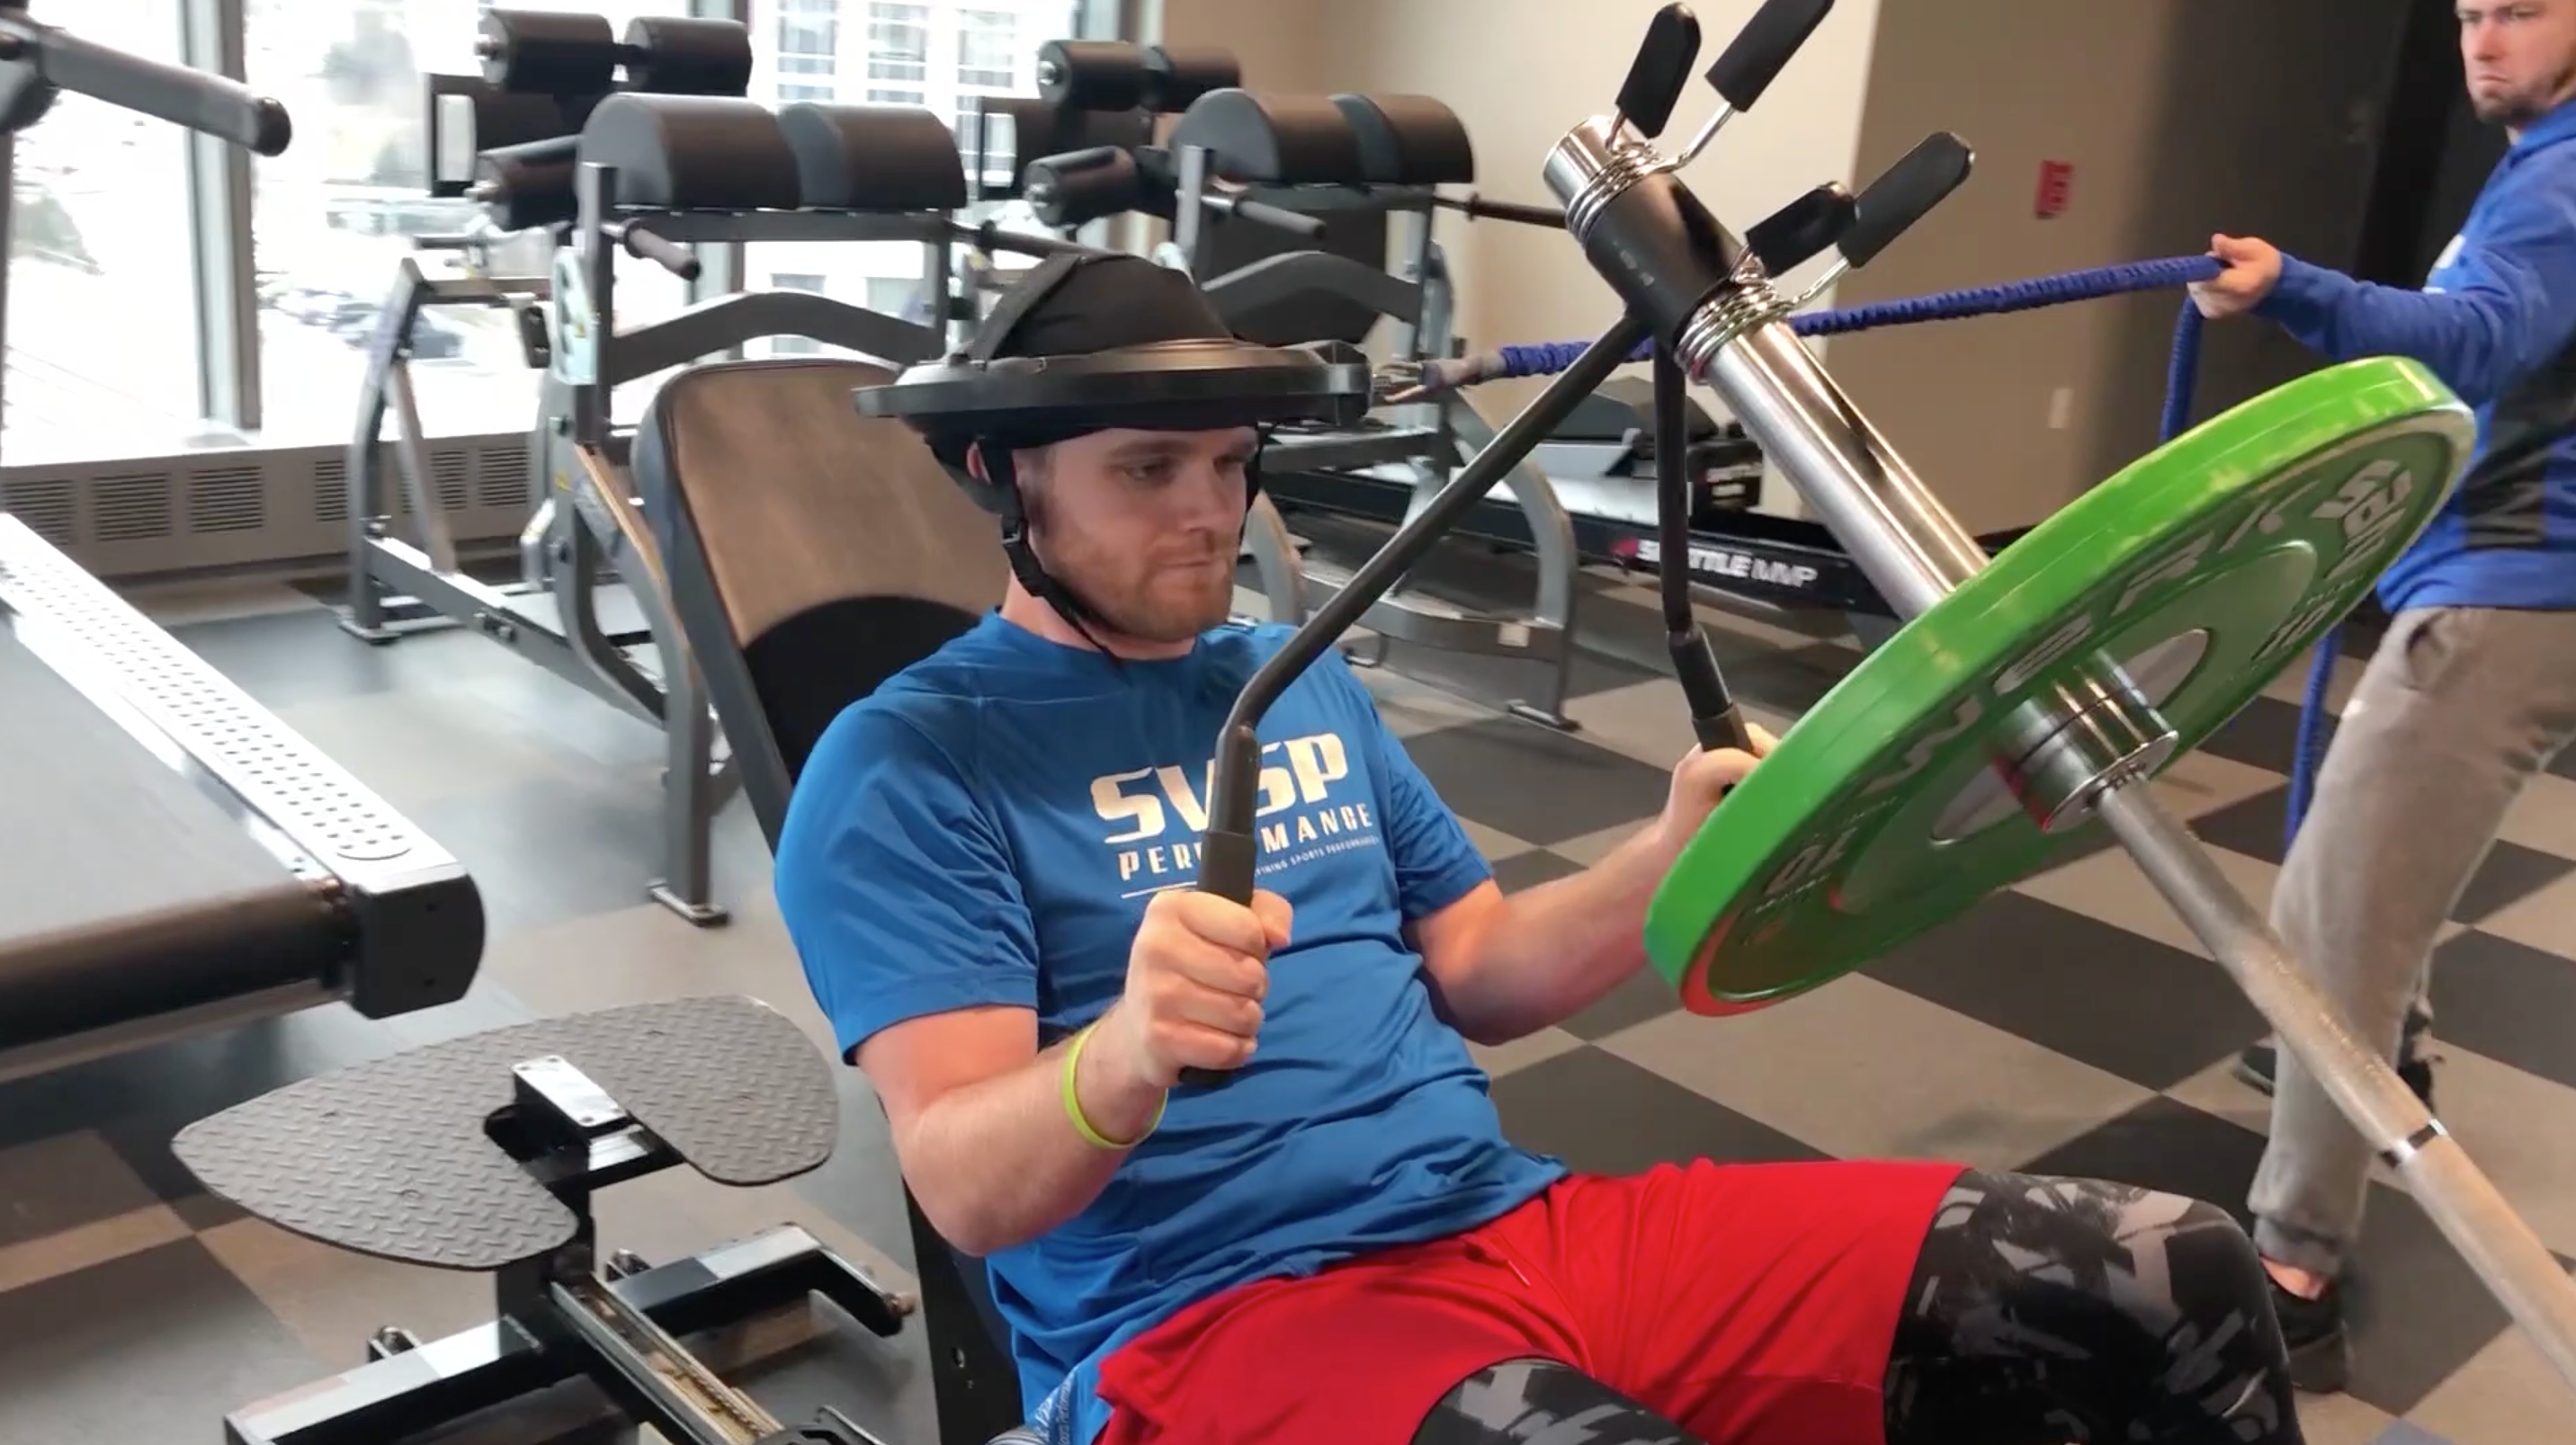 IndyCar driver Conor Daly training with Iron Neck at SVSP